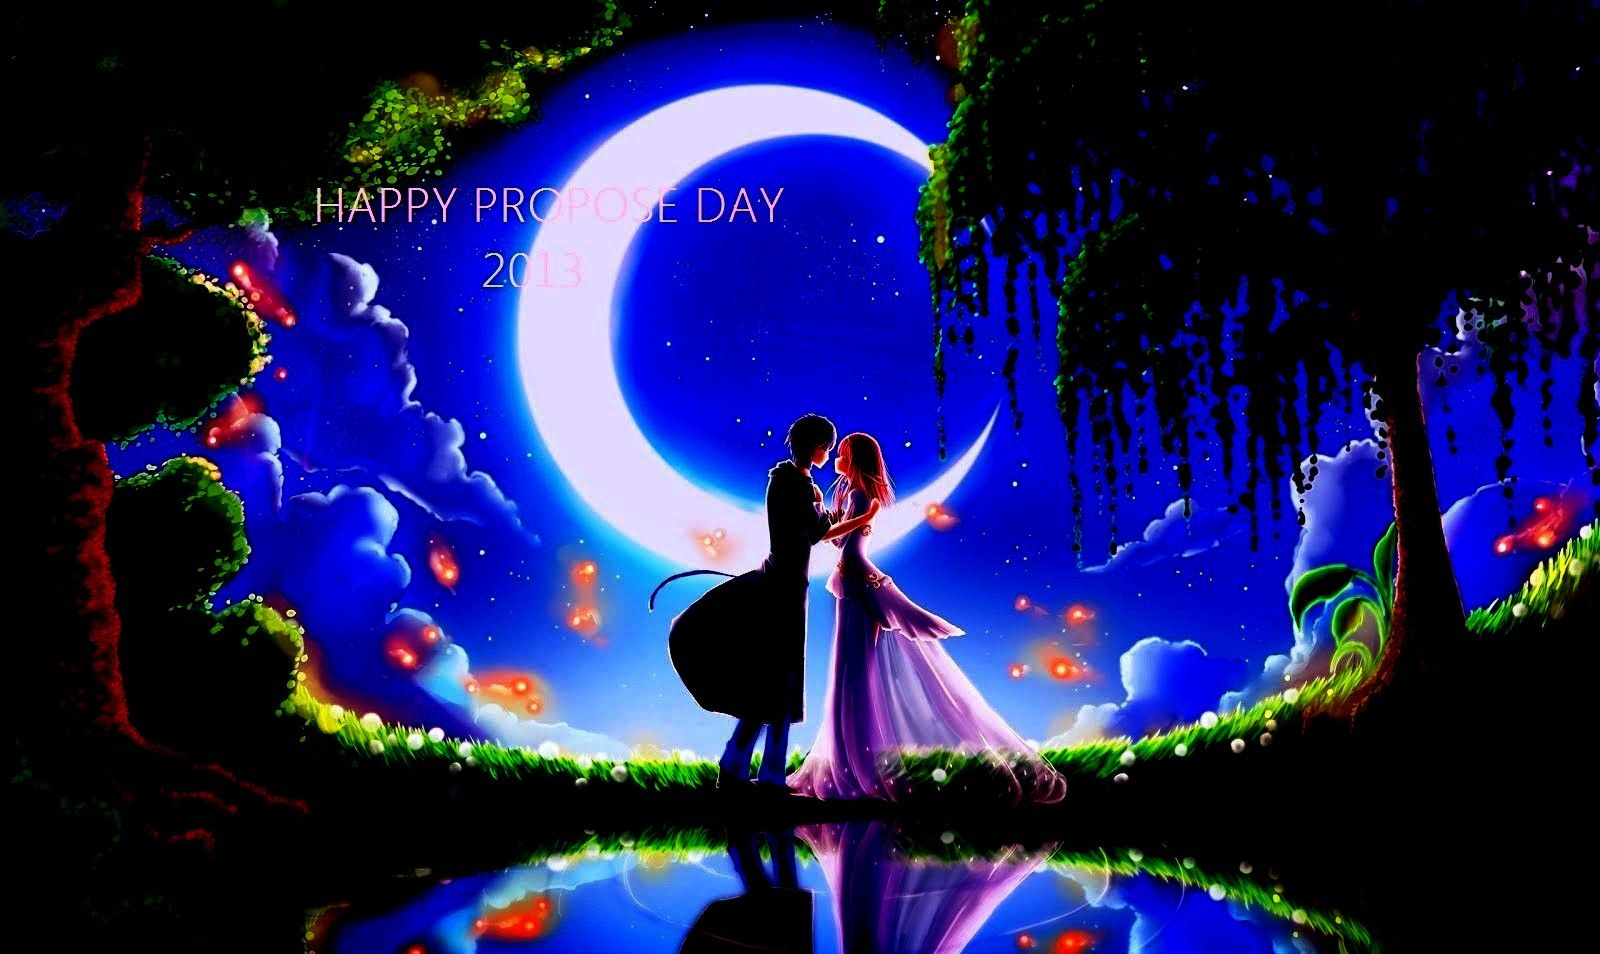 Happy Propose Day 2014 HD Wallpapers Wallpapers